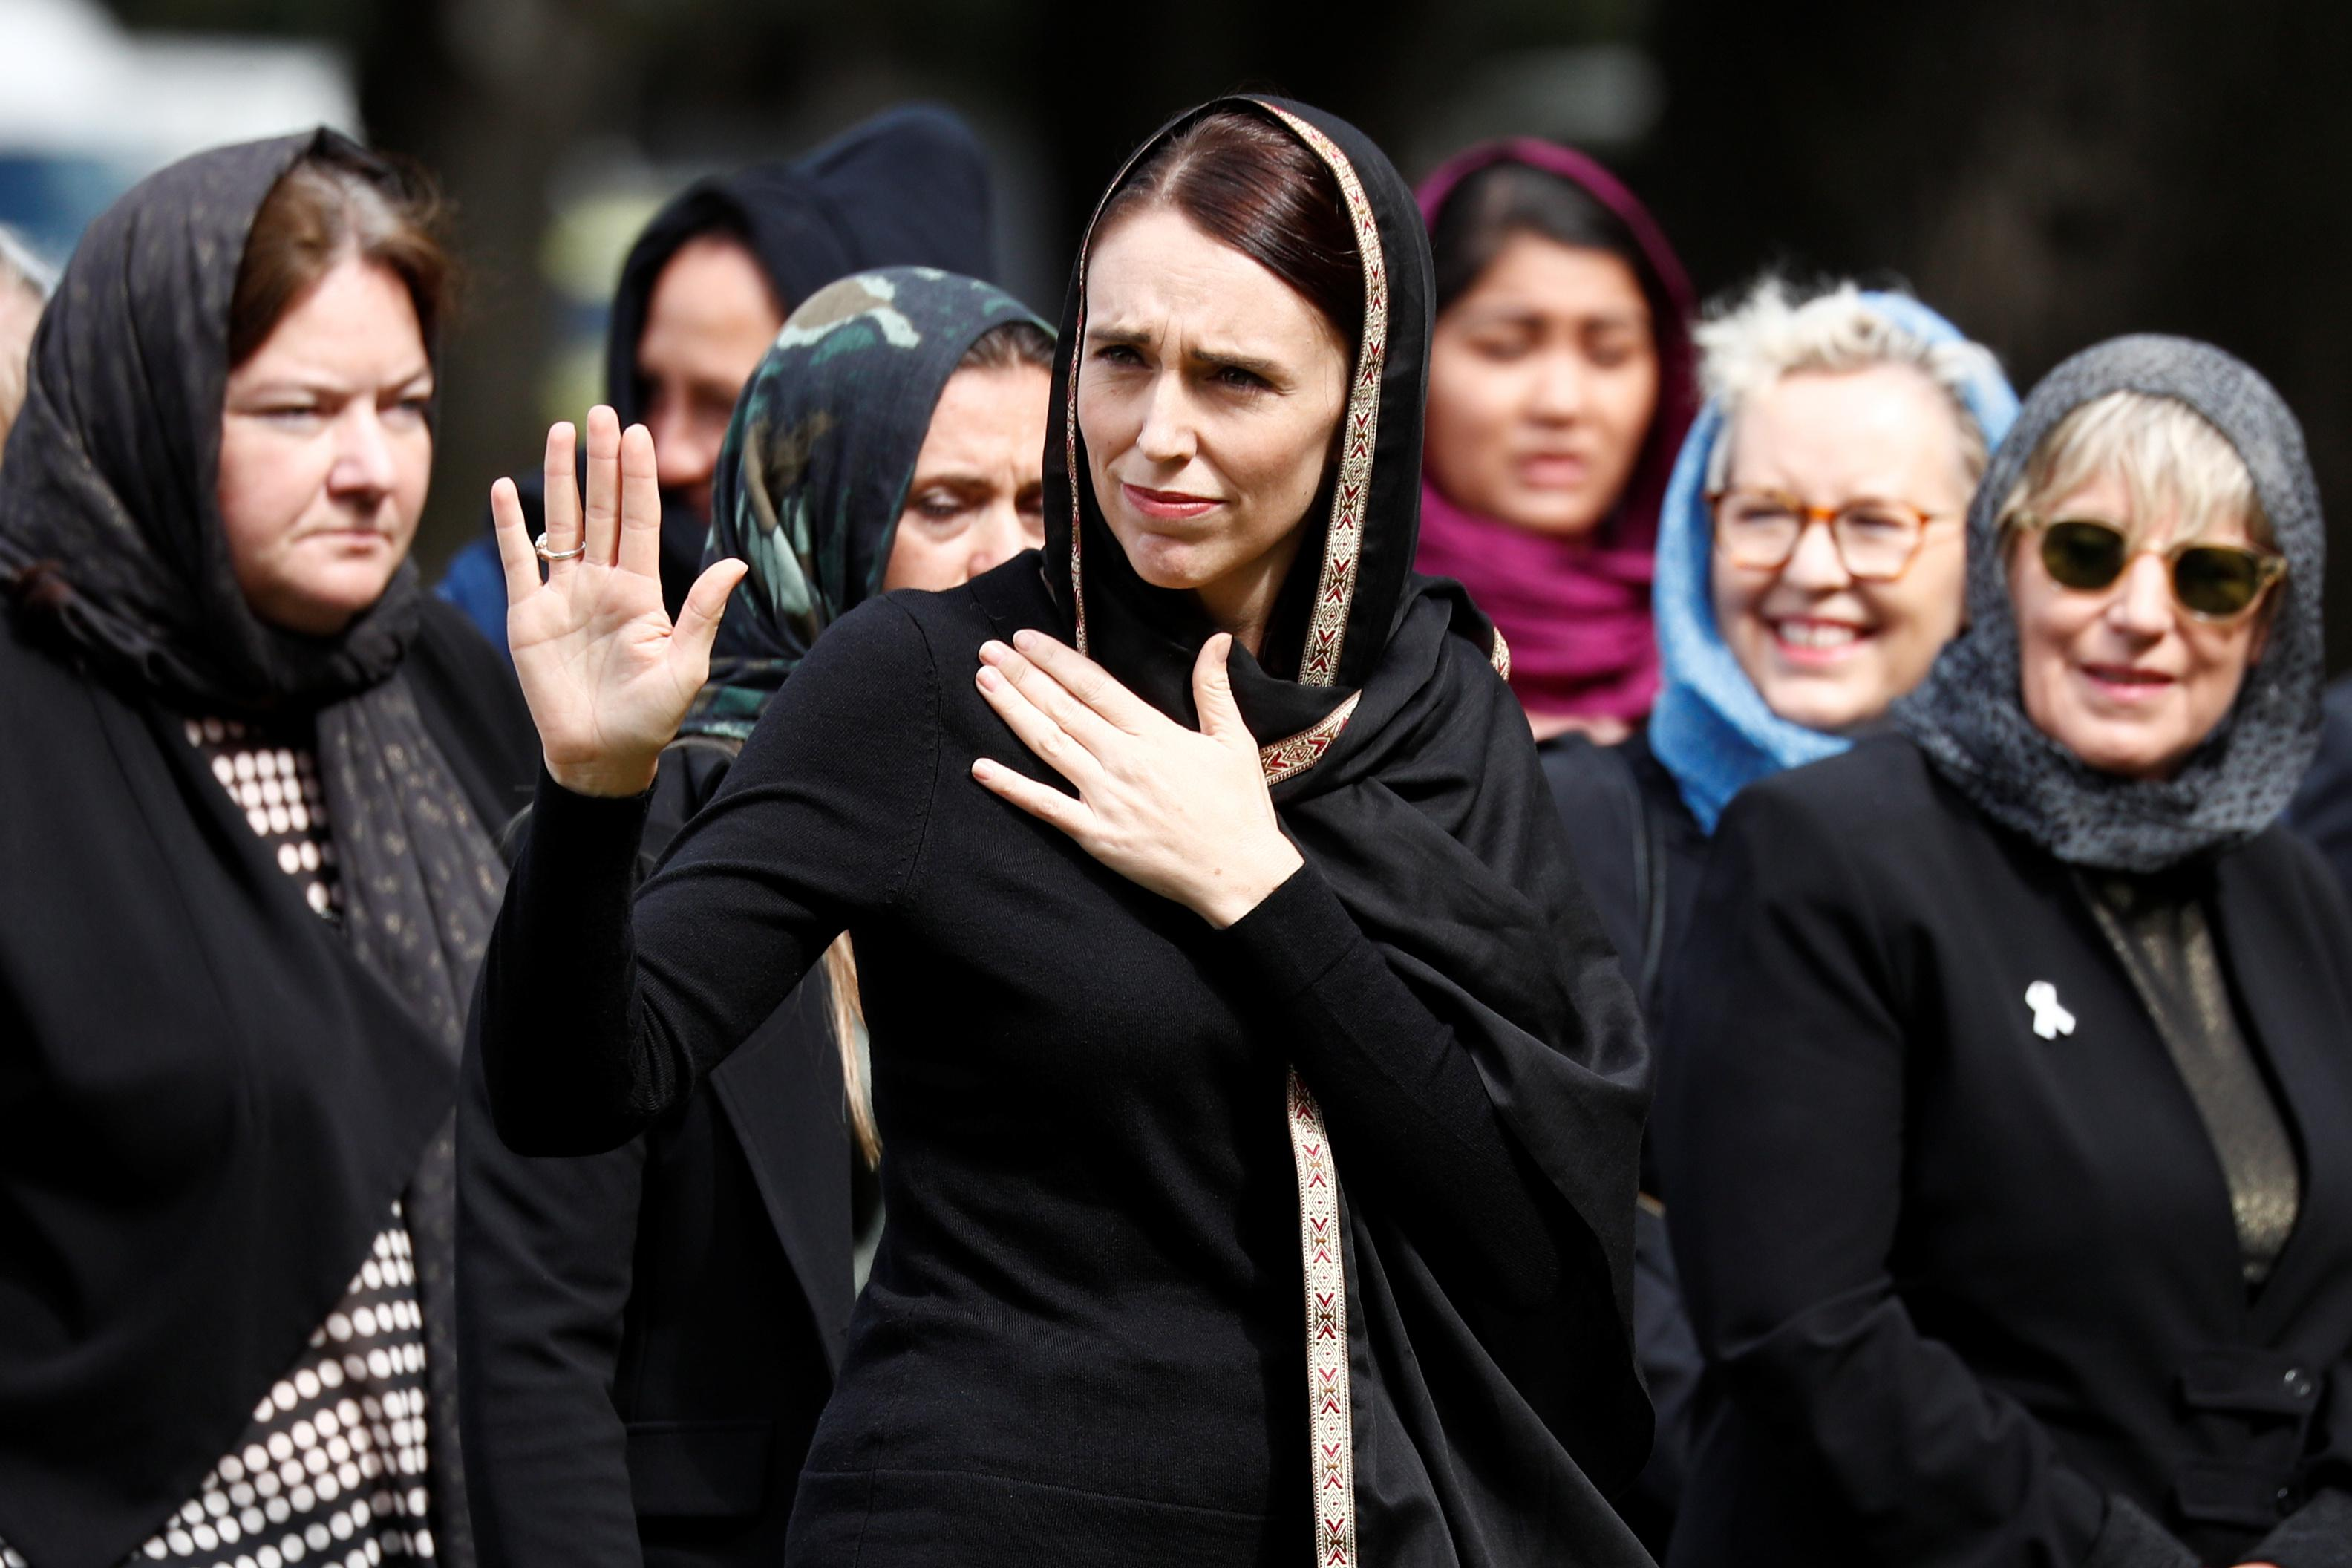 We are one, says PM Ardern as NZ mourns with prayers, silence